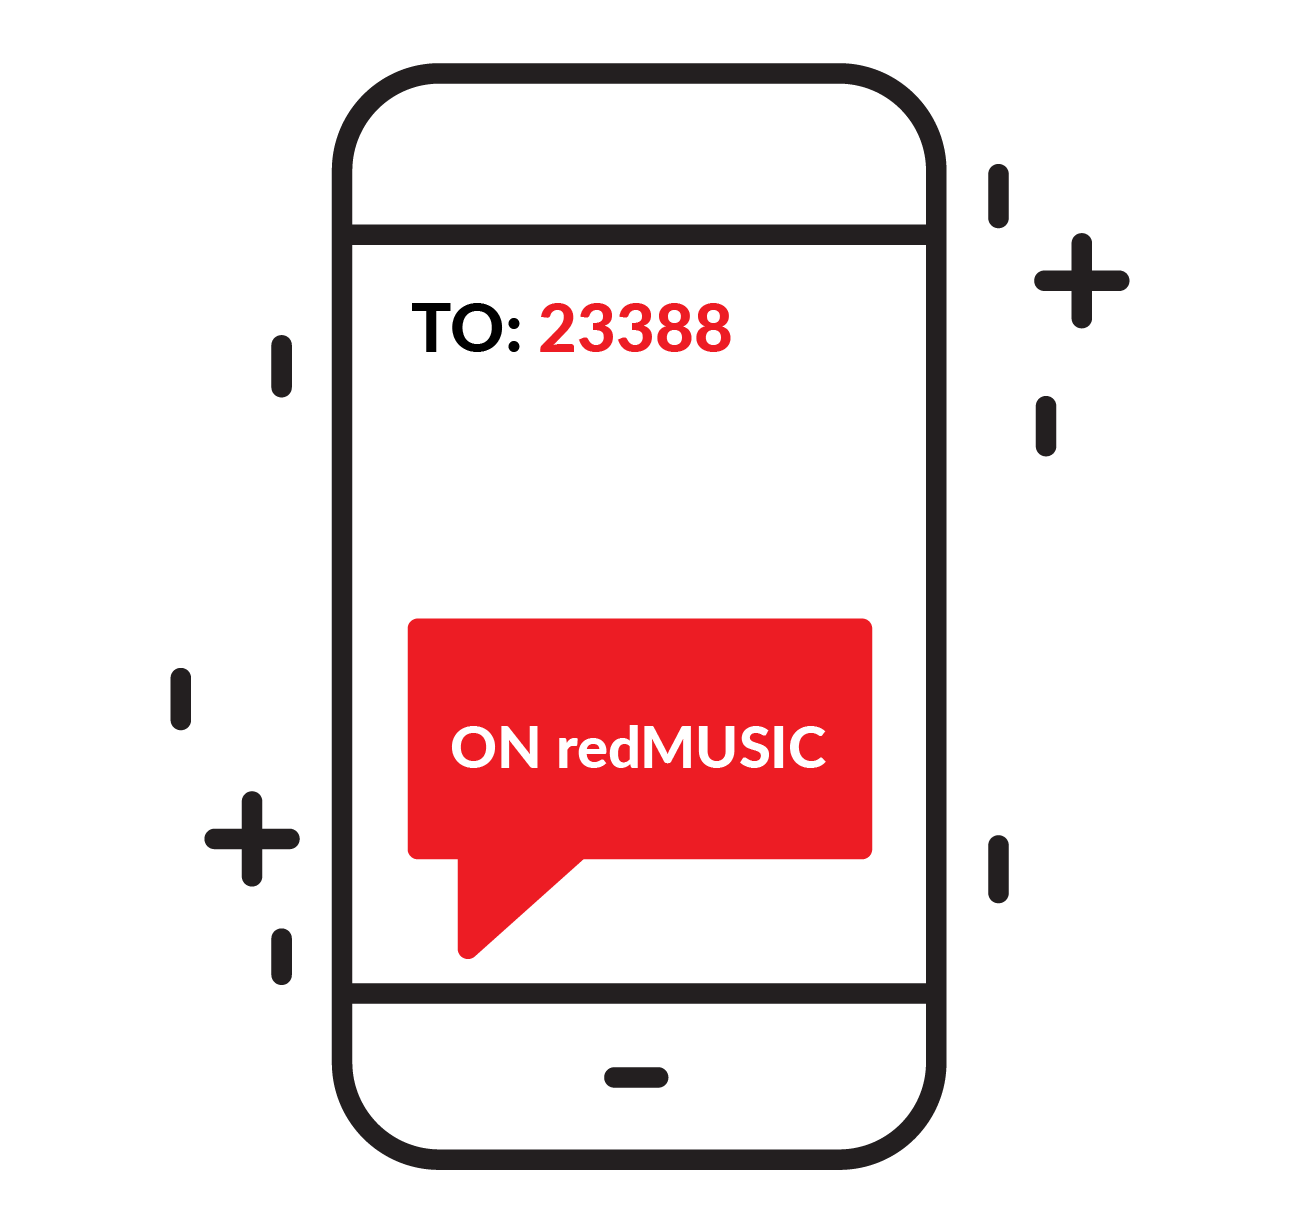 OPTION 2 Step 1 Send a SMS with the code ON redVIDEO to 23388